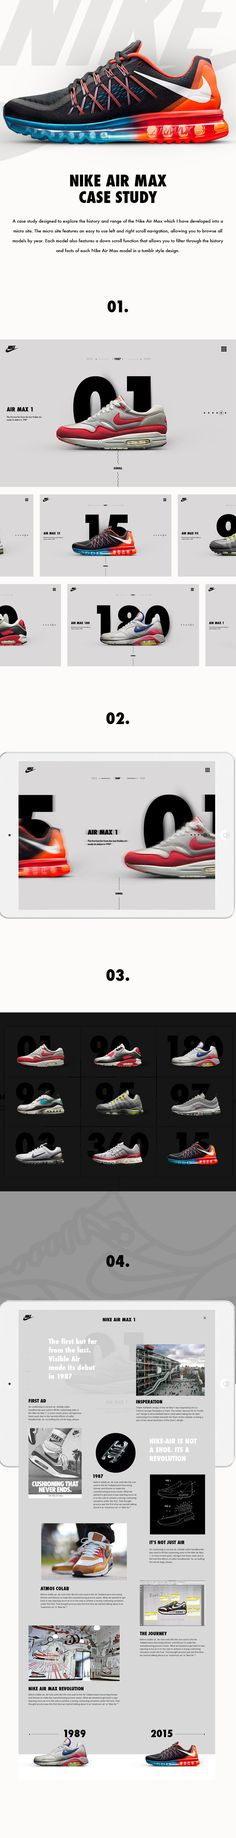 buy popular 7f852 60e75 Nike Air Max Case Study on Web Design Served